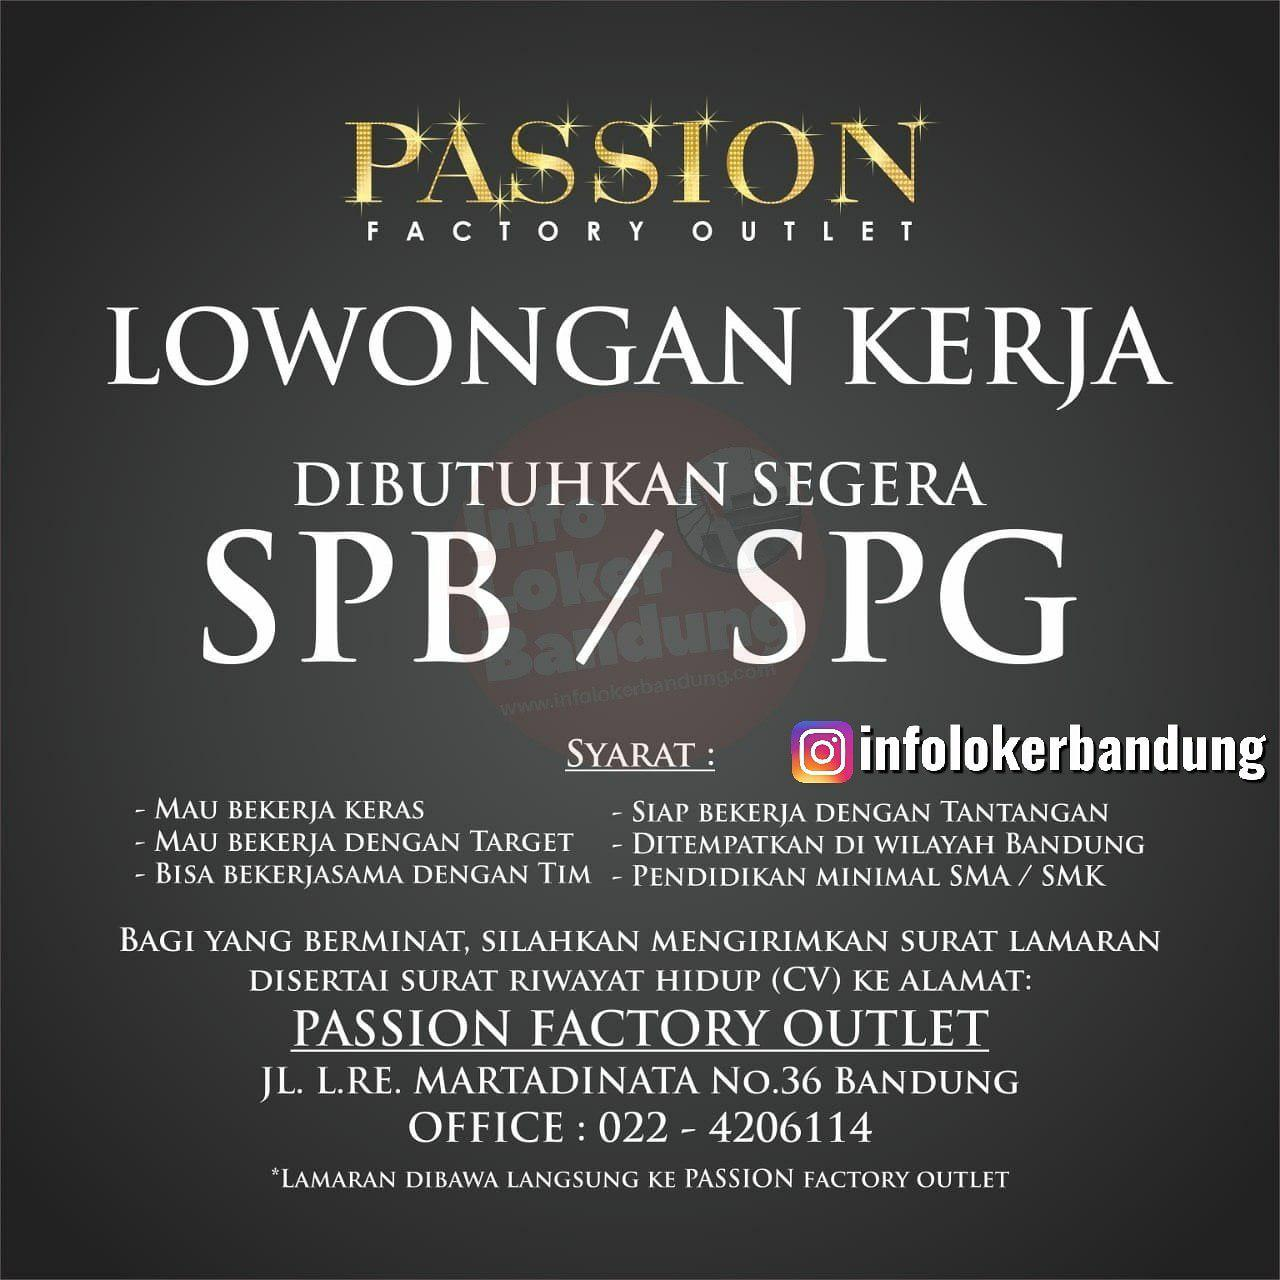 Lowongan Kerja SPG & SPB Passion Factory Outlet Bandung Mei 2019